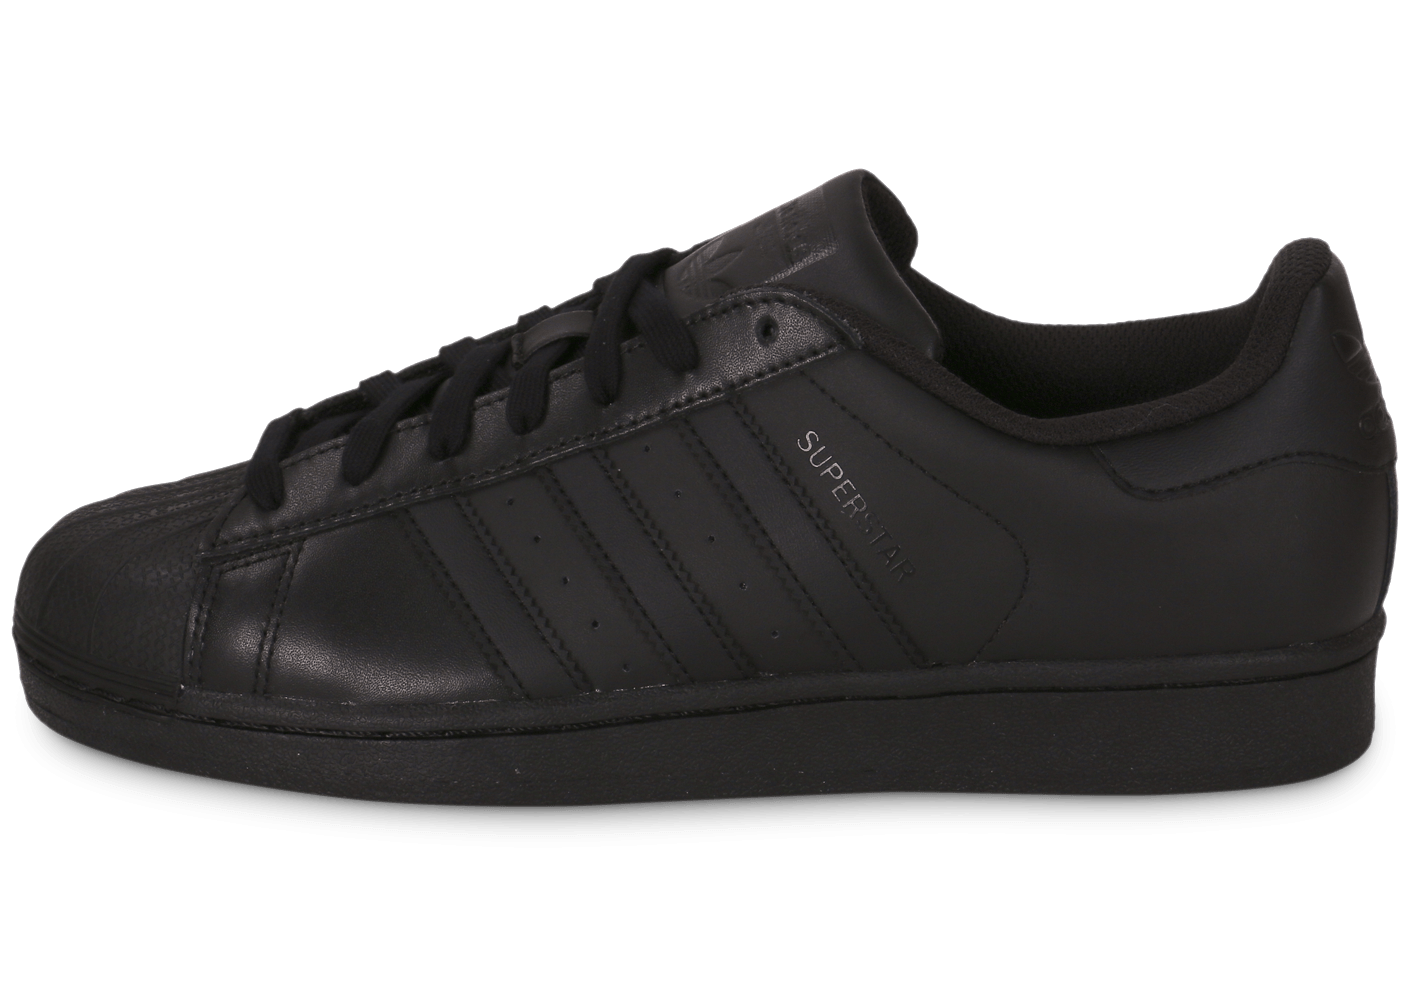 98ca90ed1e5f5 ... cheapest boutique franaise fondation adidas superstar af5666 original noir  noir homme sneakers 77502 743e1